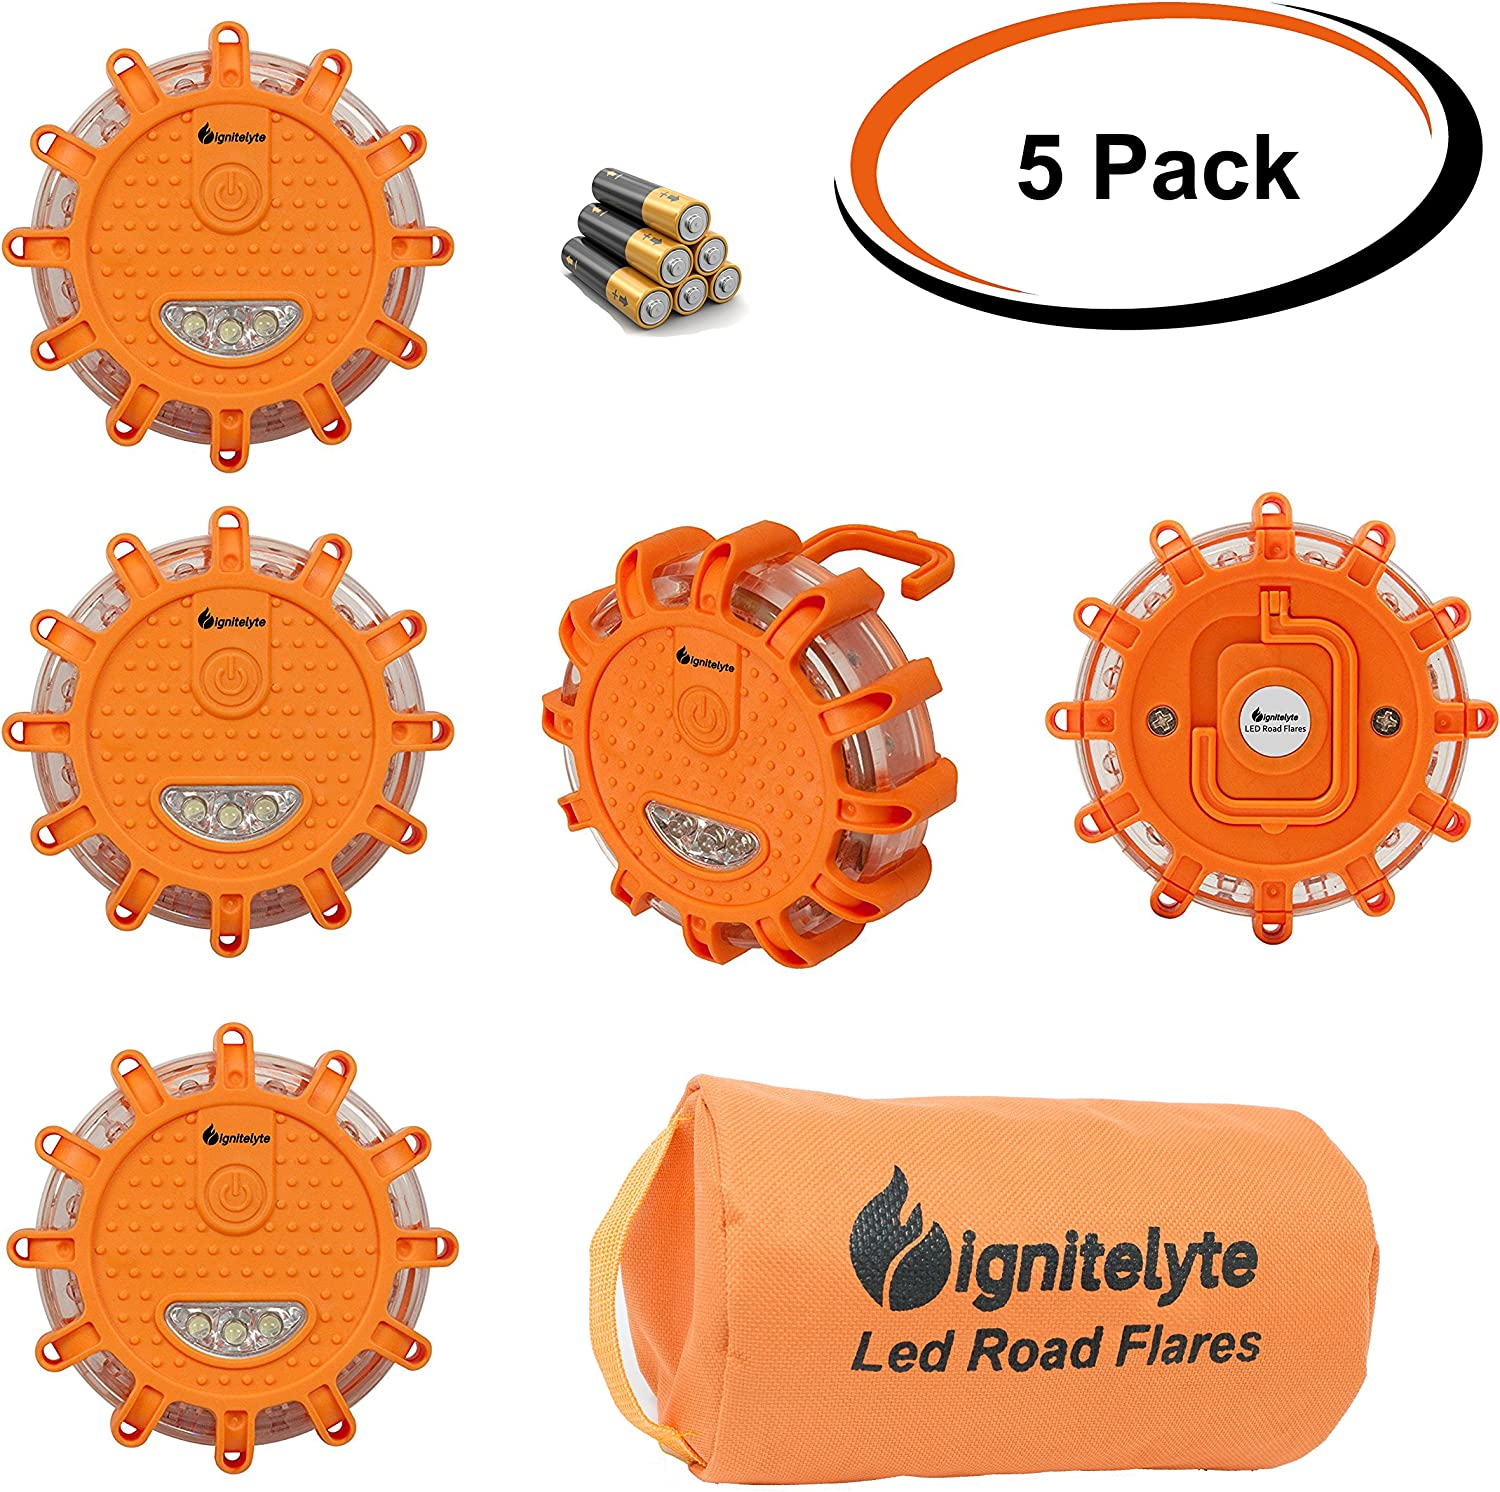 Pack of 5 Orion Star LED Road Flare Emergency Disc with Storage Bag and Batteries Included 9 Light Modes Plus Hook and Magnet SOS Signal for Camping or Hiking Flashing Safety Beacon for Car or Boat